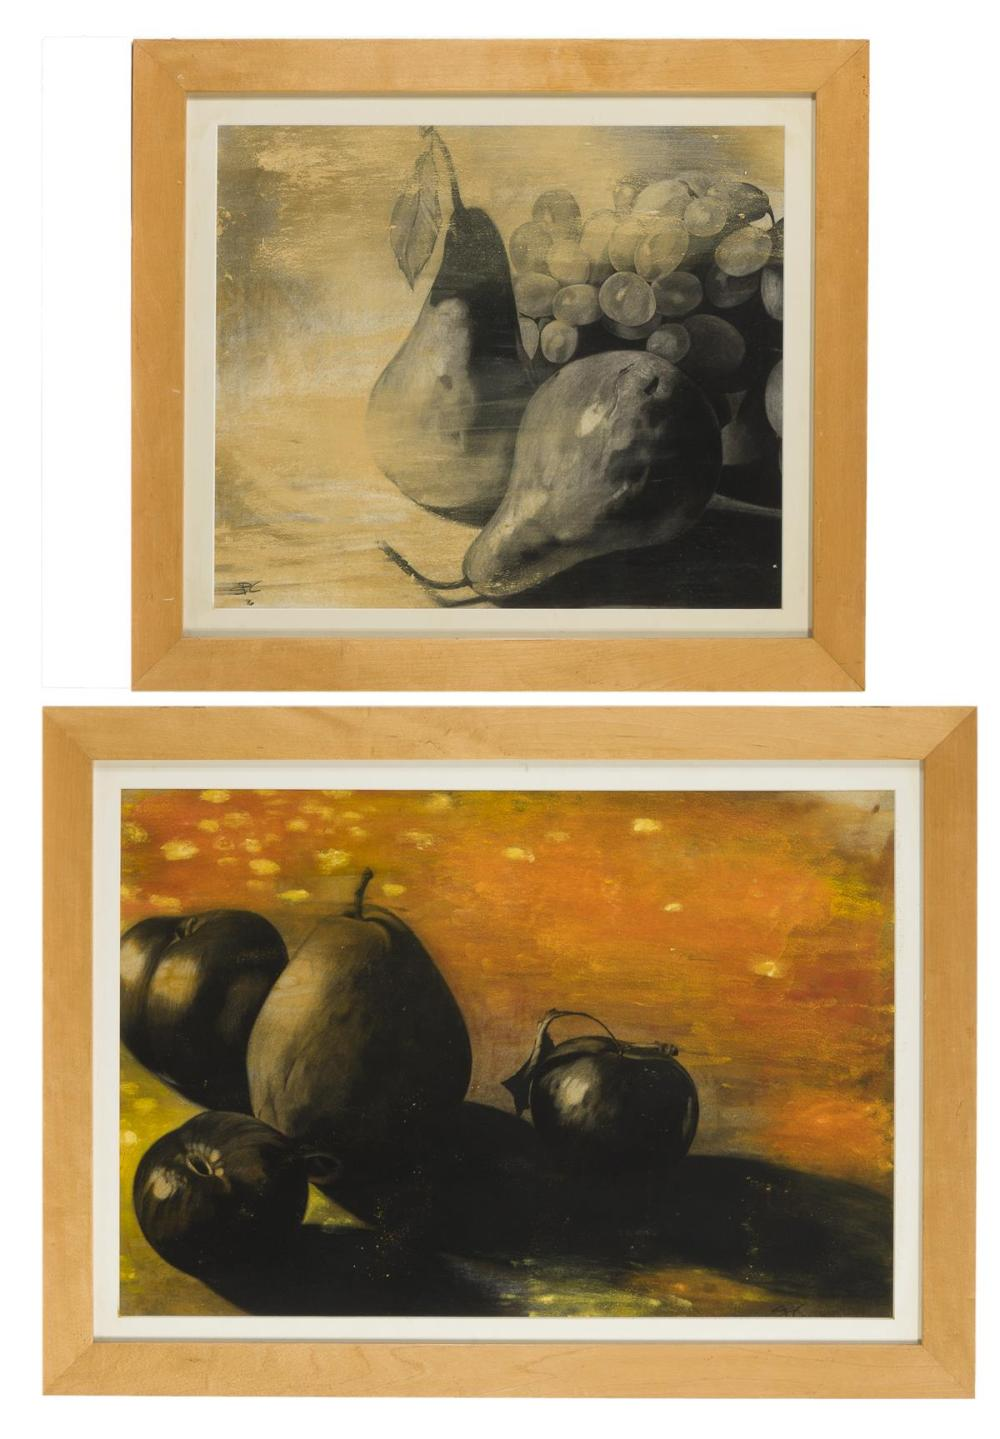 Stephen P. Curry, (20th Century San Diego, CA), Still lifes with fruit, 1996; two works, Charcoal and powder pigments on paper under gl